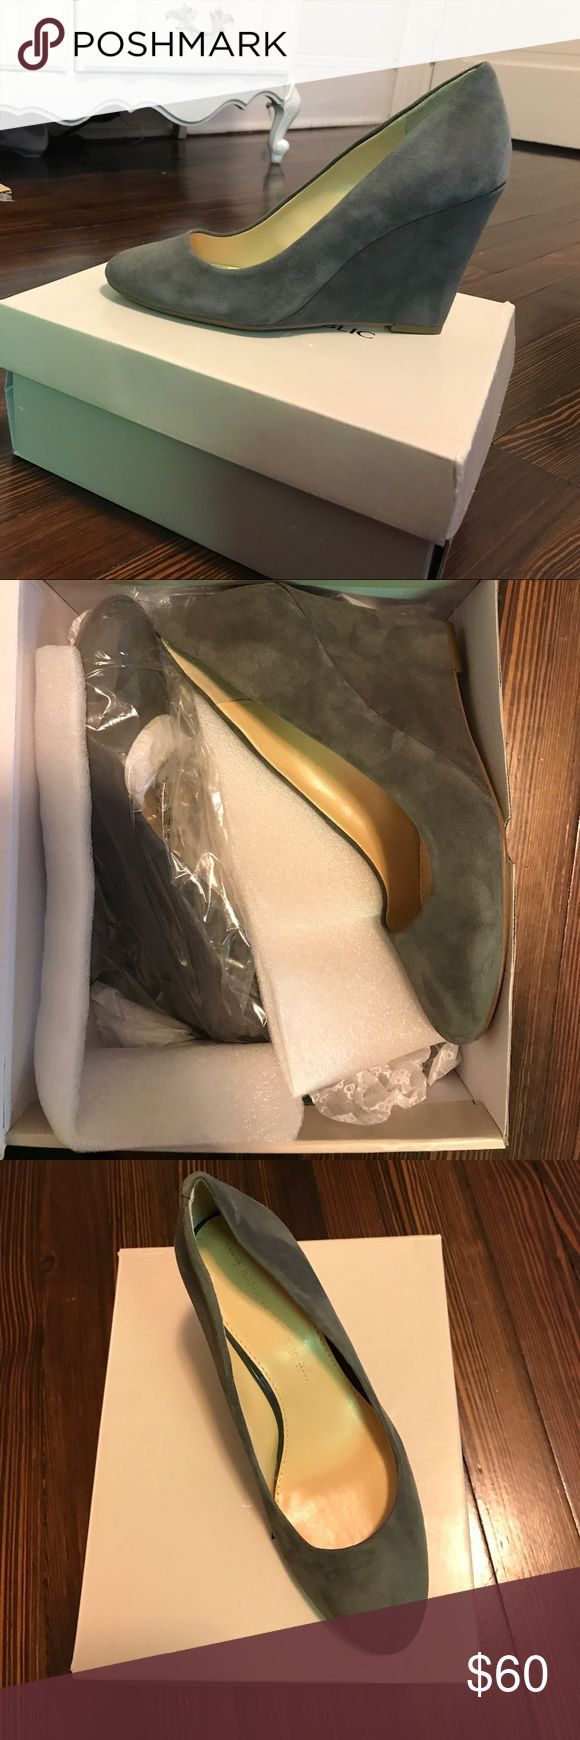 Brand NEW in Box BR Rorie Wedge Heel Gray suede (color name is Boulder) in Banana republic Rorie Shoe. Will ship with box upon request Banana Republic Shoes Wedges